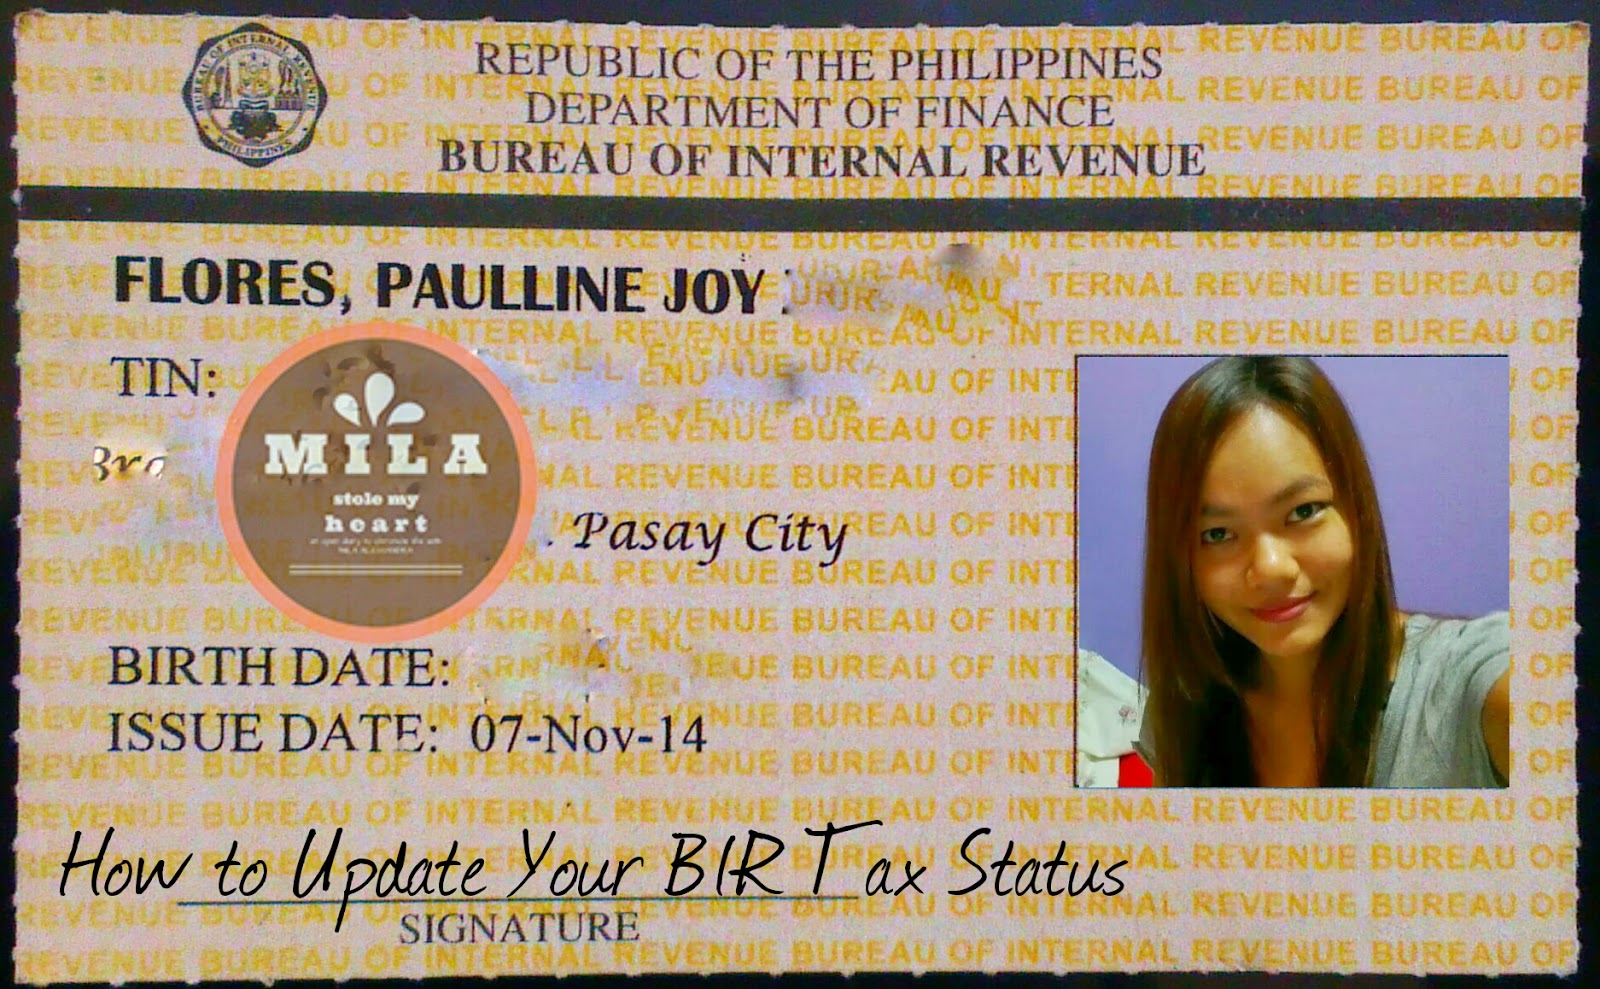 BIR resumes online application for TIN | INQUIRER.net